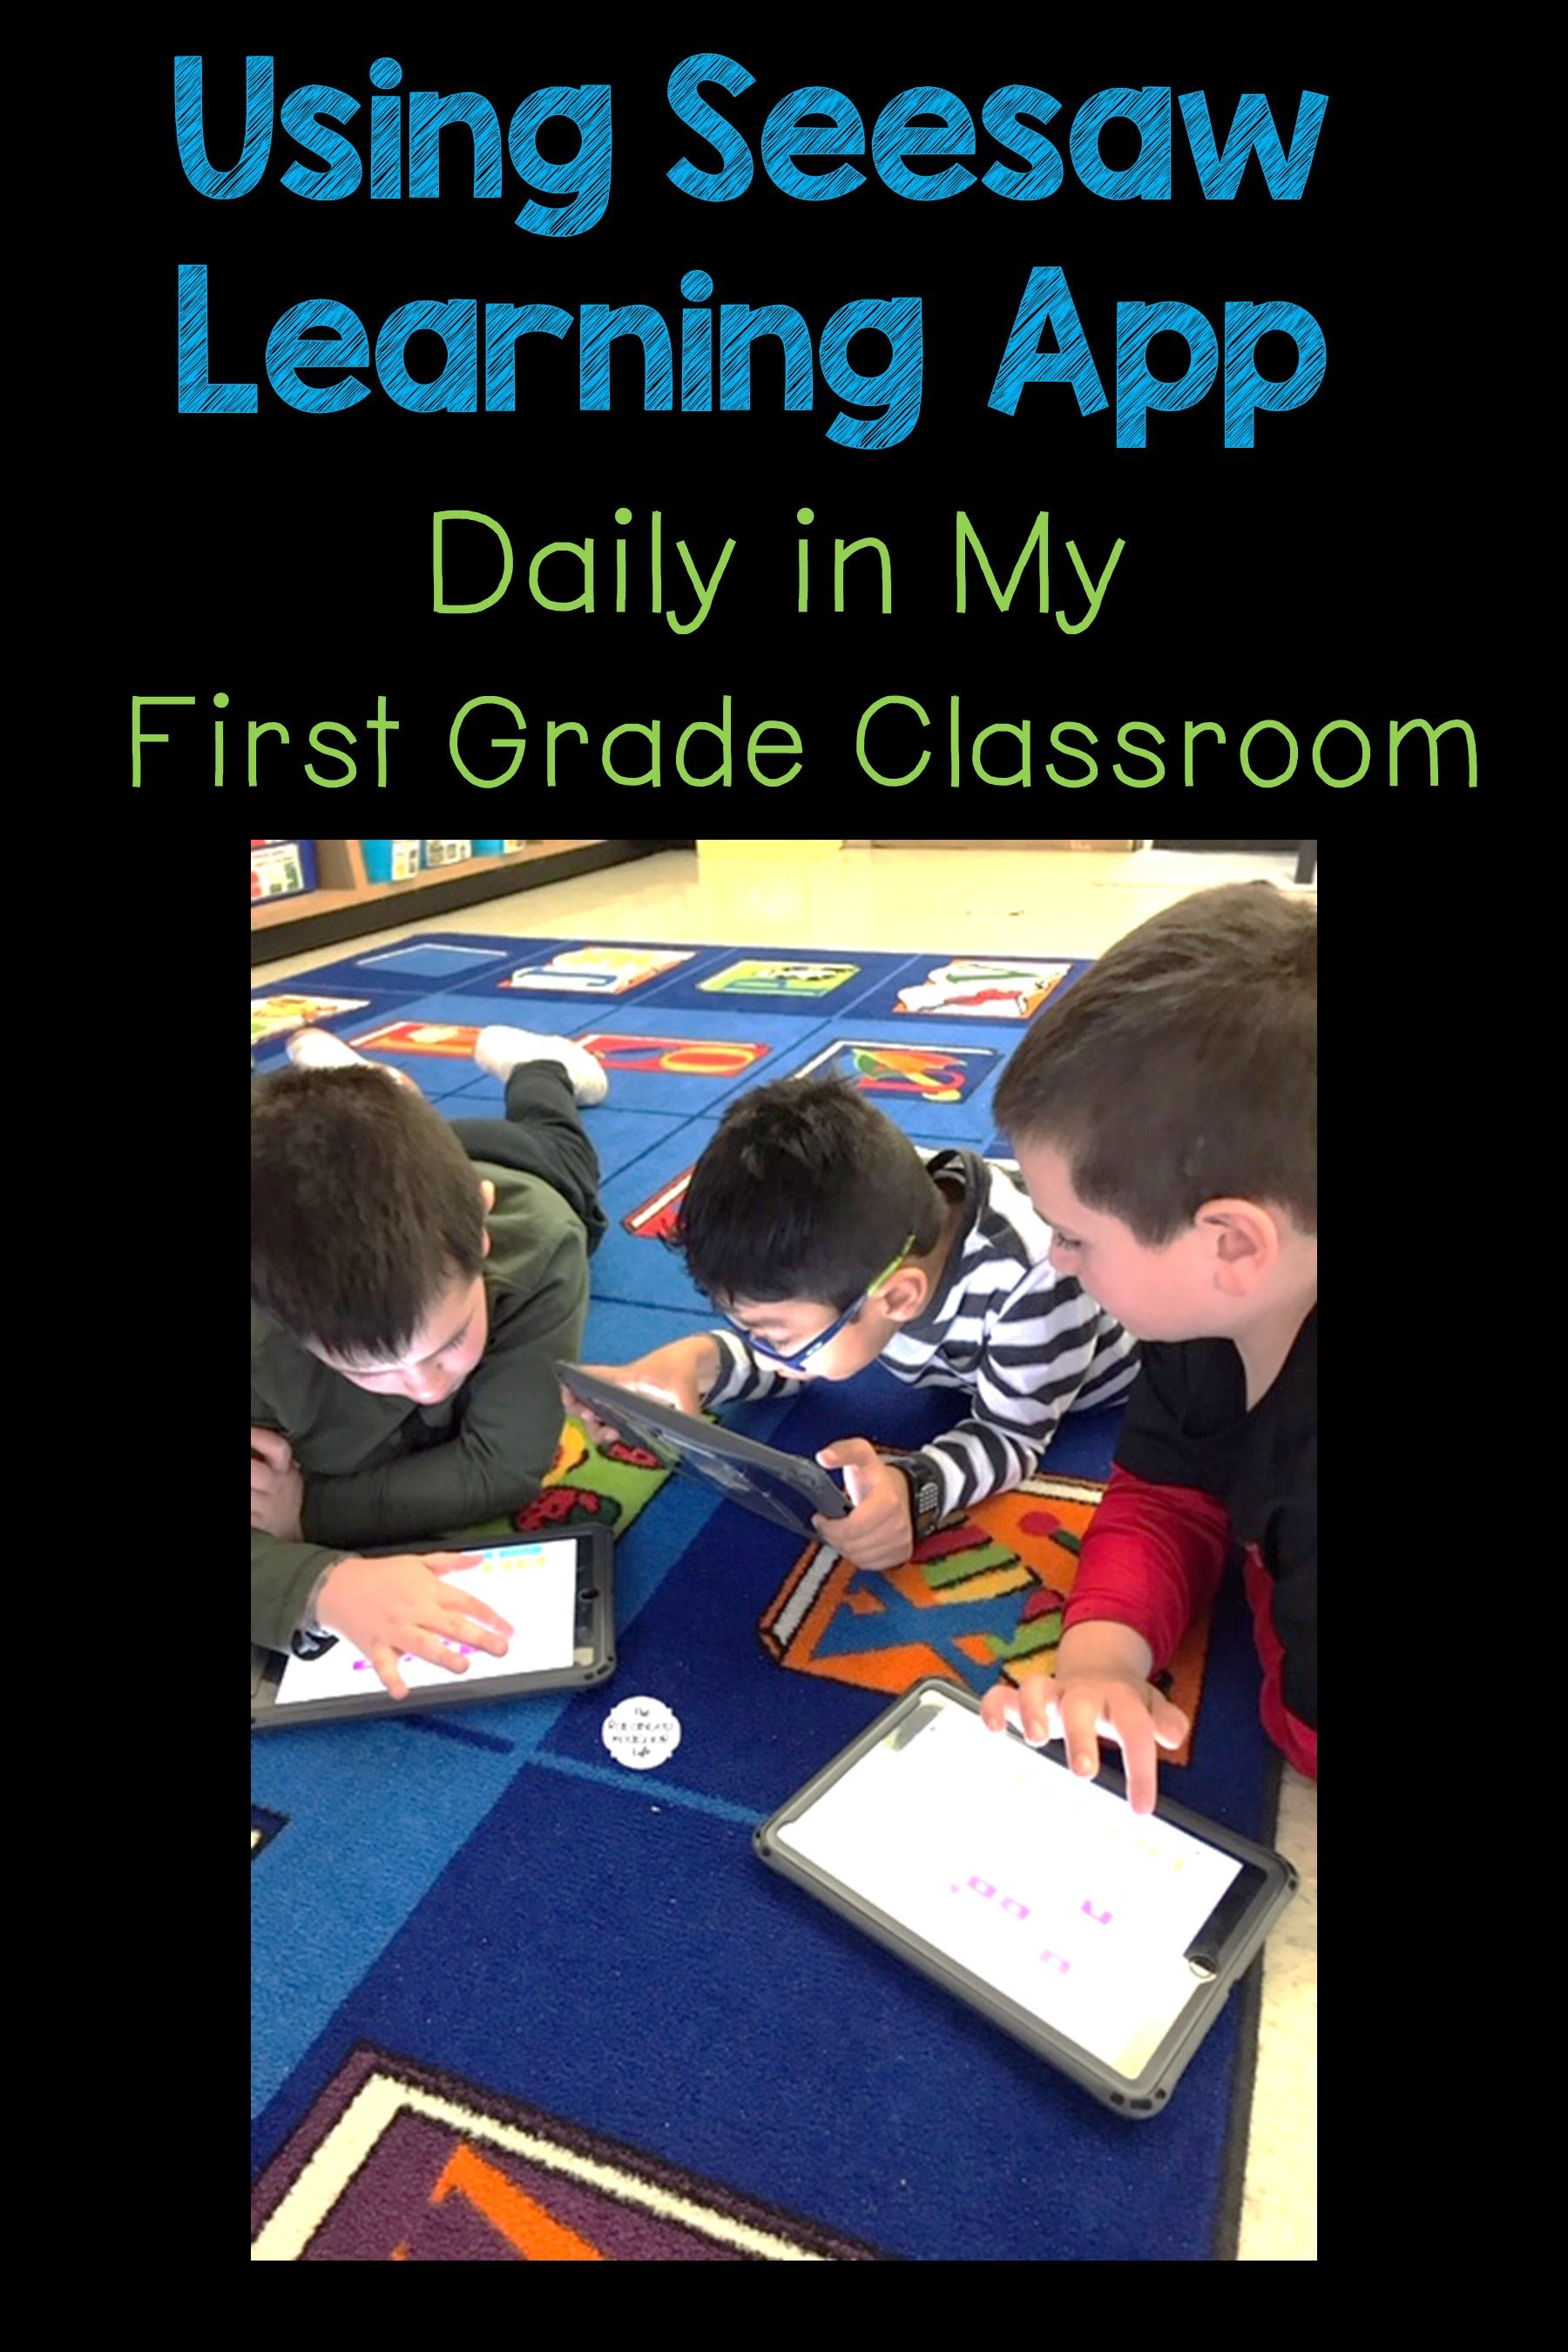 Learn how using Seesaw Learning App in my classroom